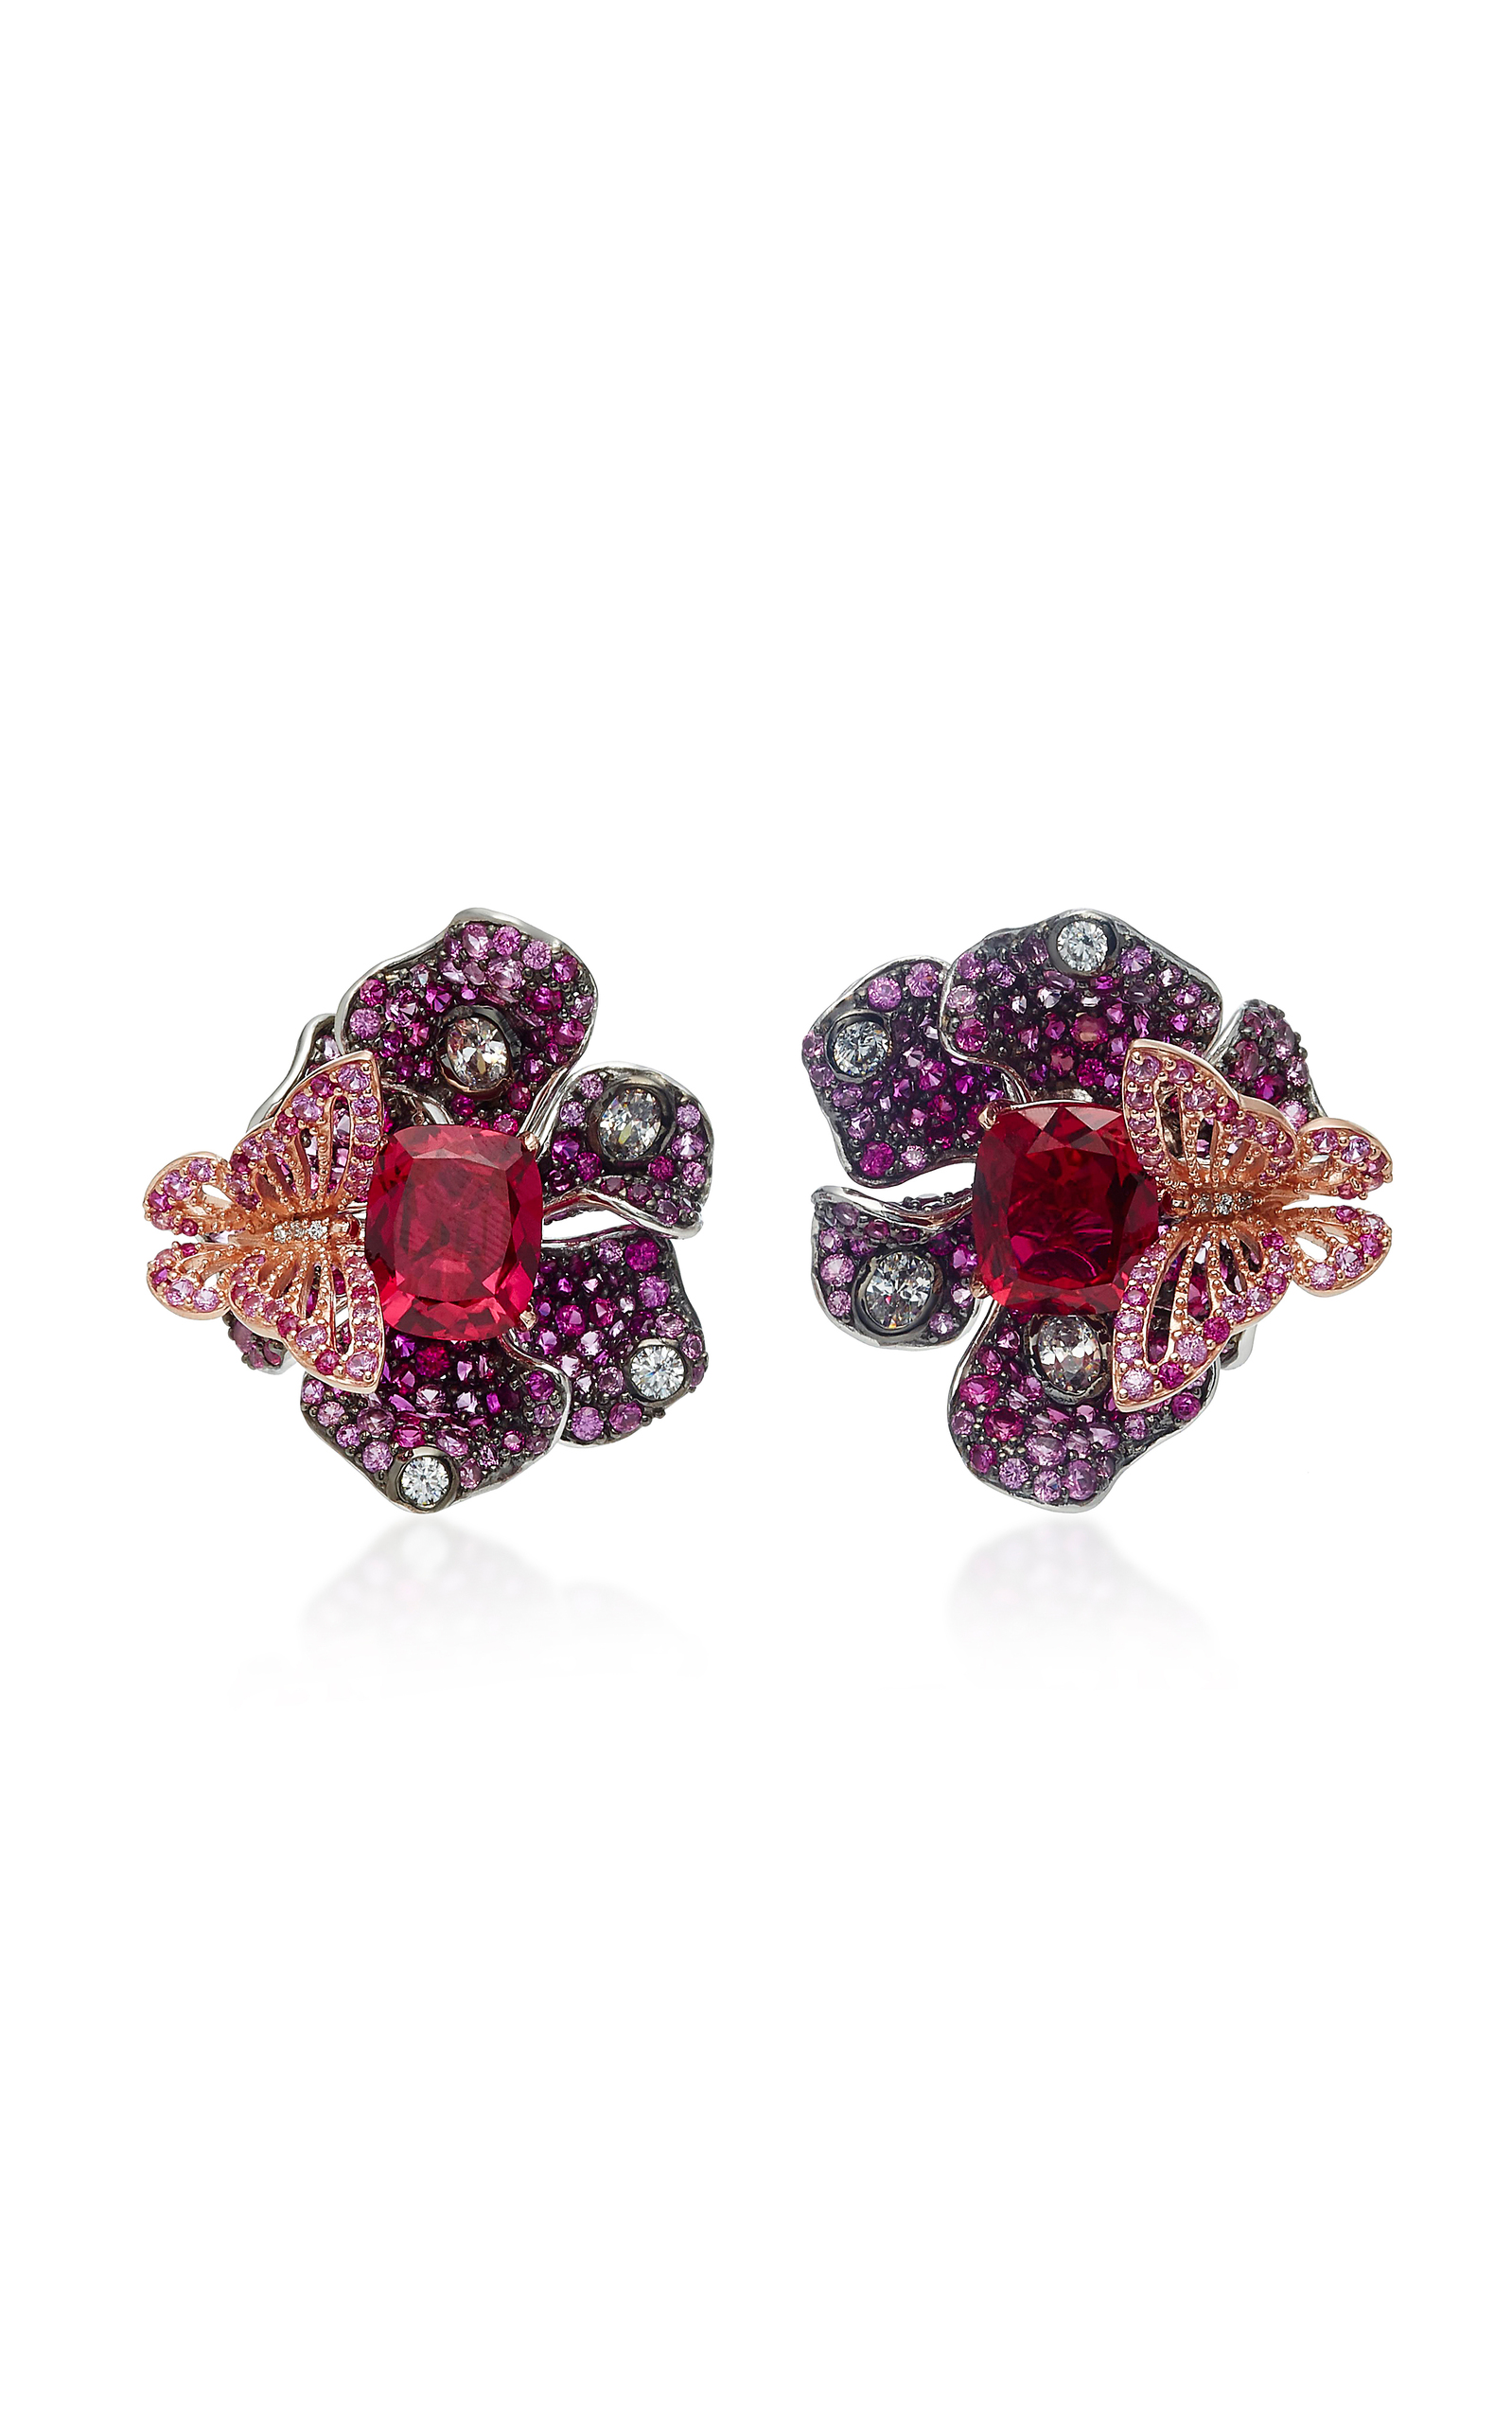 ANABELA CHAN M'O Exclusive Ruby Peony Earrings in Pink